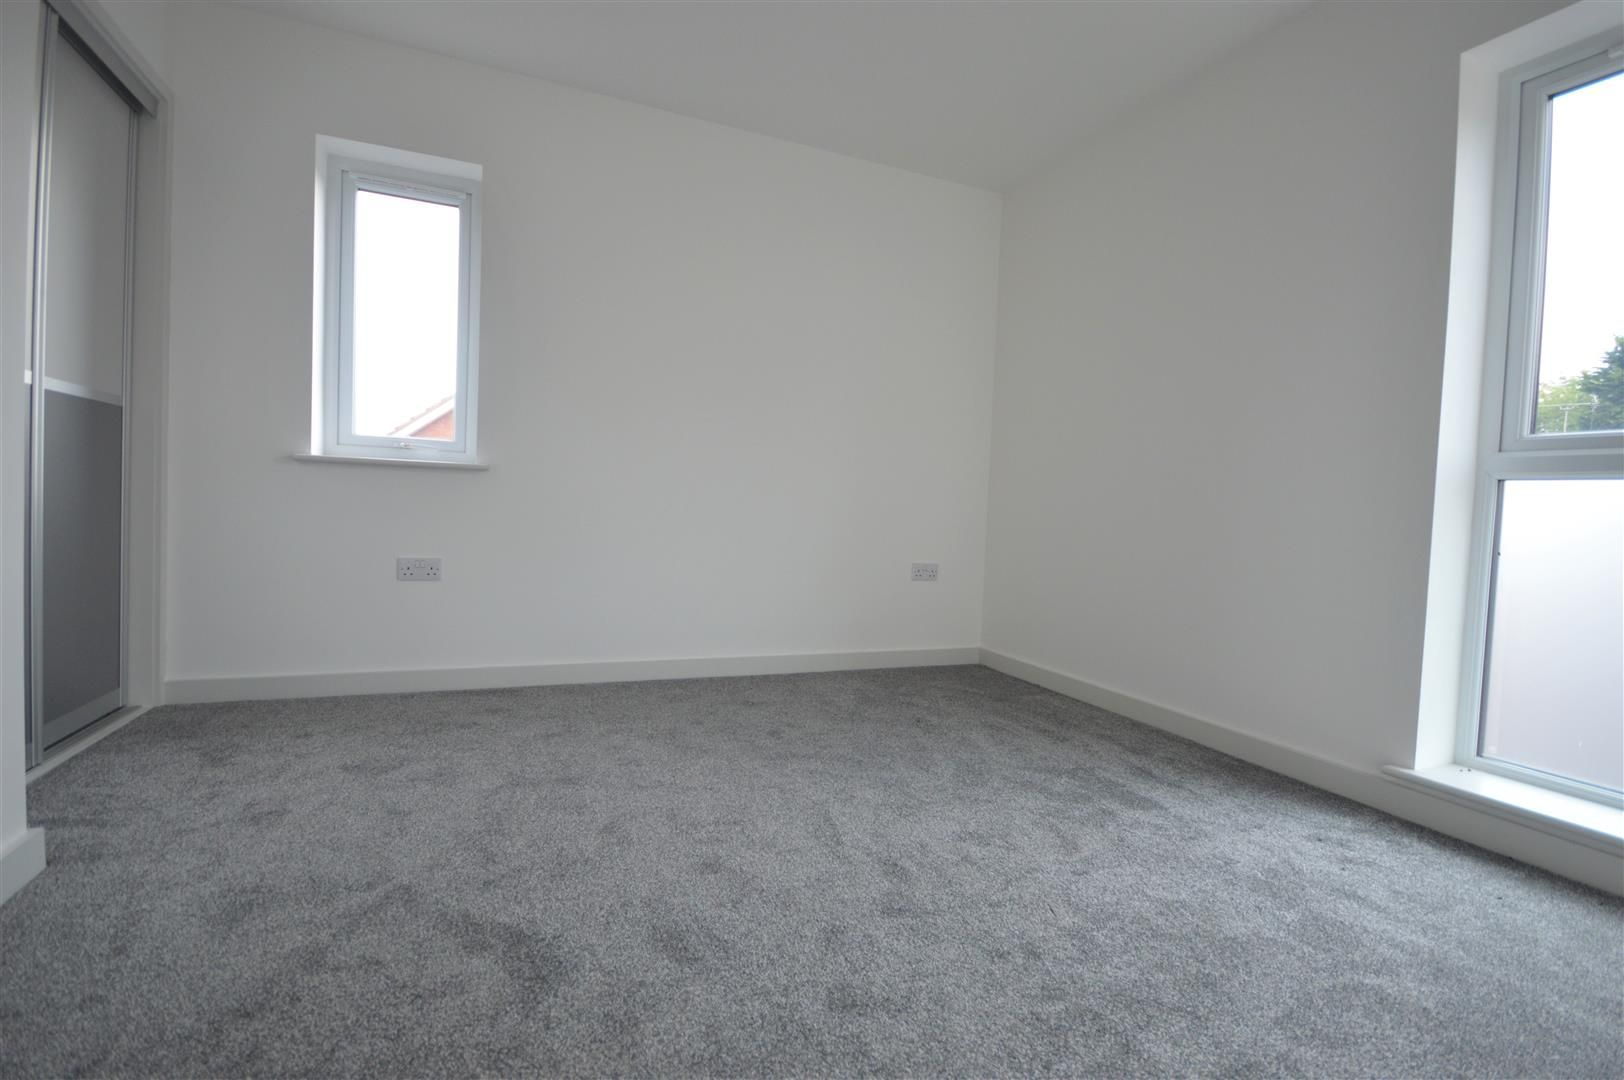 2 bed semi-detached for sale in Leominster  - Property Image 8